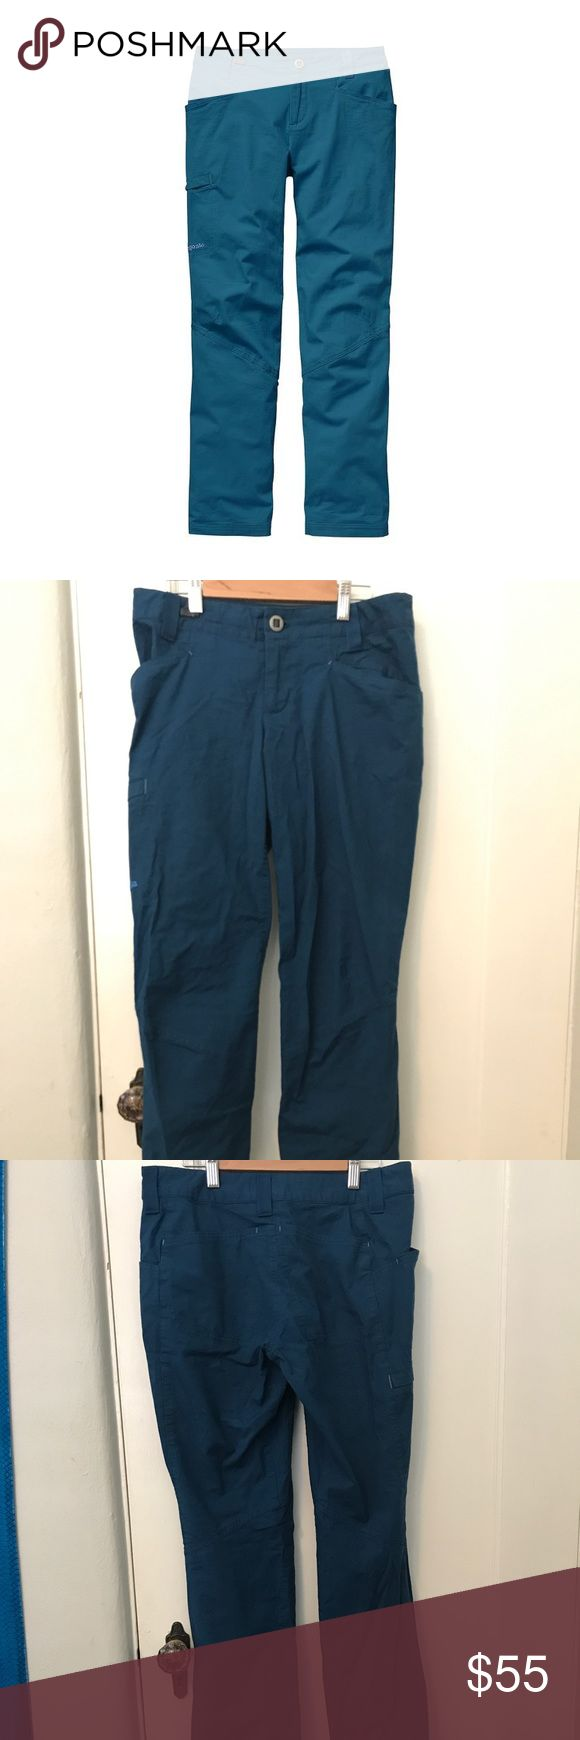 Patagonia Women's Venga Rock Climbing Pants Patagonia Women's Venga rock pants. Size 4. Retail for $79. Big Sur Blue color sold out on Patagonia. Worn only once, I just needed a different size. Patagonia Pants